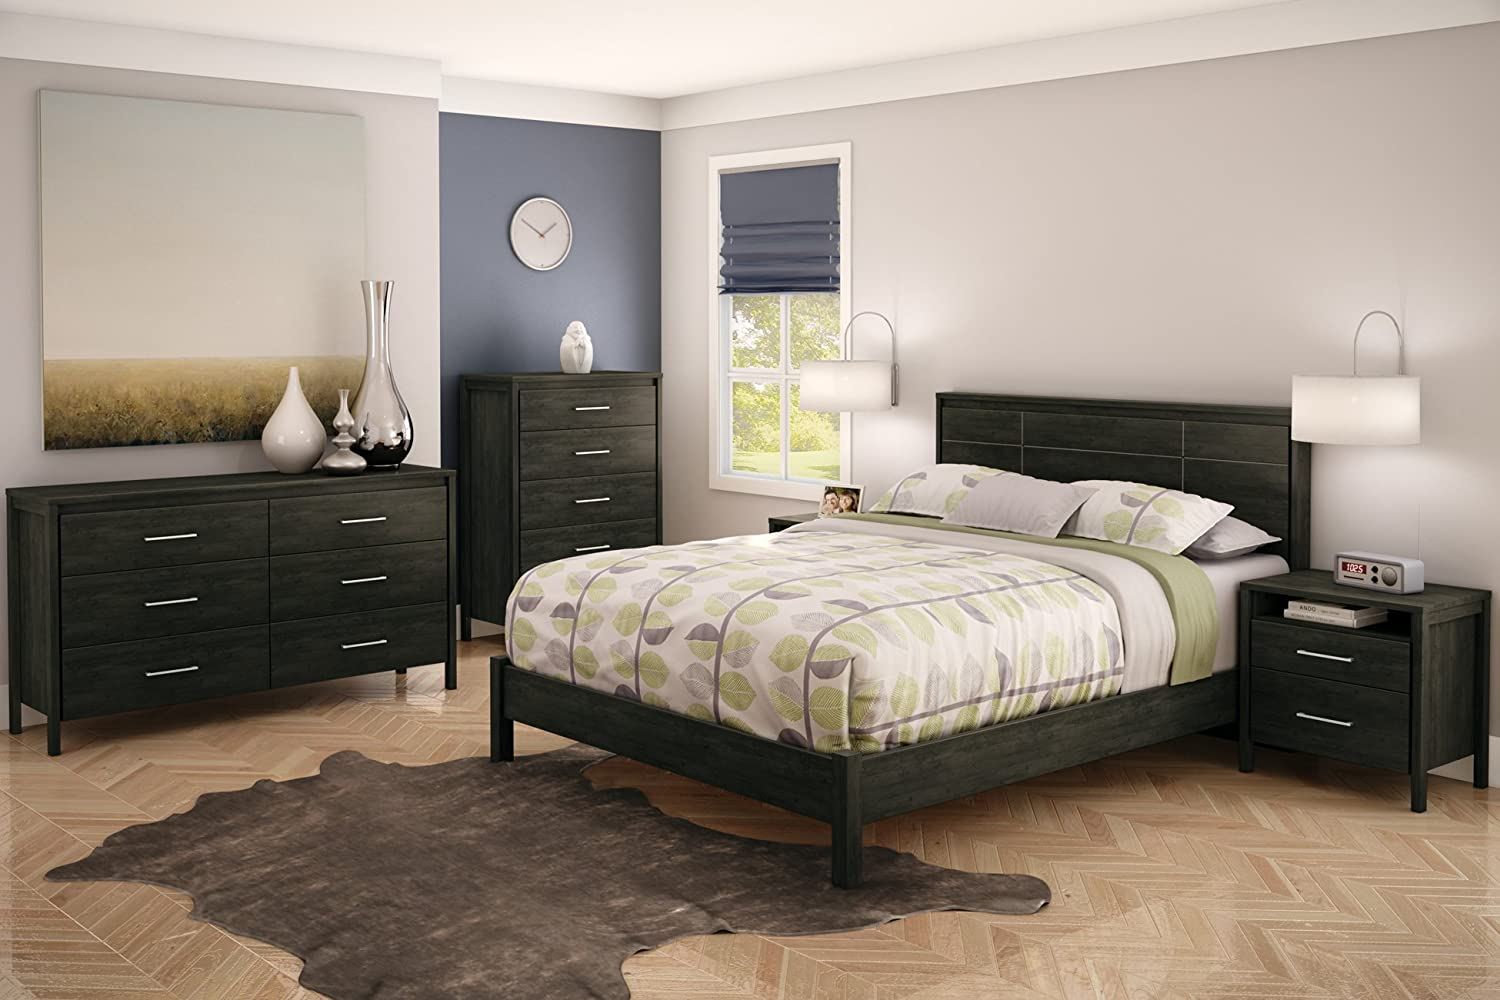 South Shore Bedroom Furniture Amazoncom South Shore Gravity Collection Dresser Ebony Kitchen